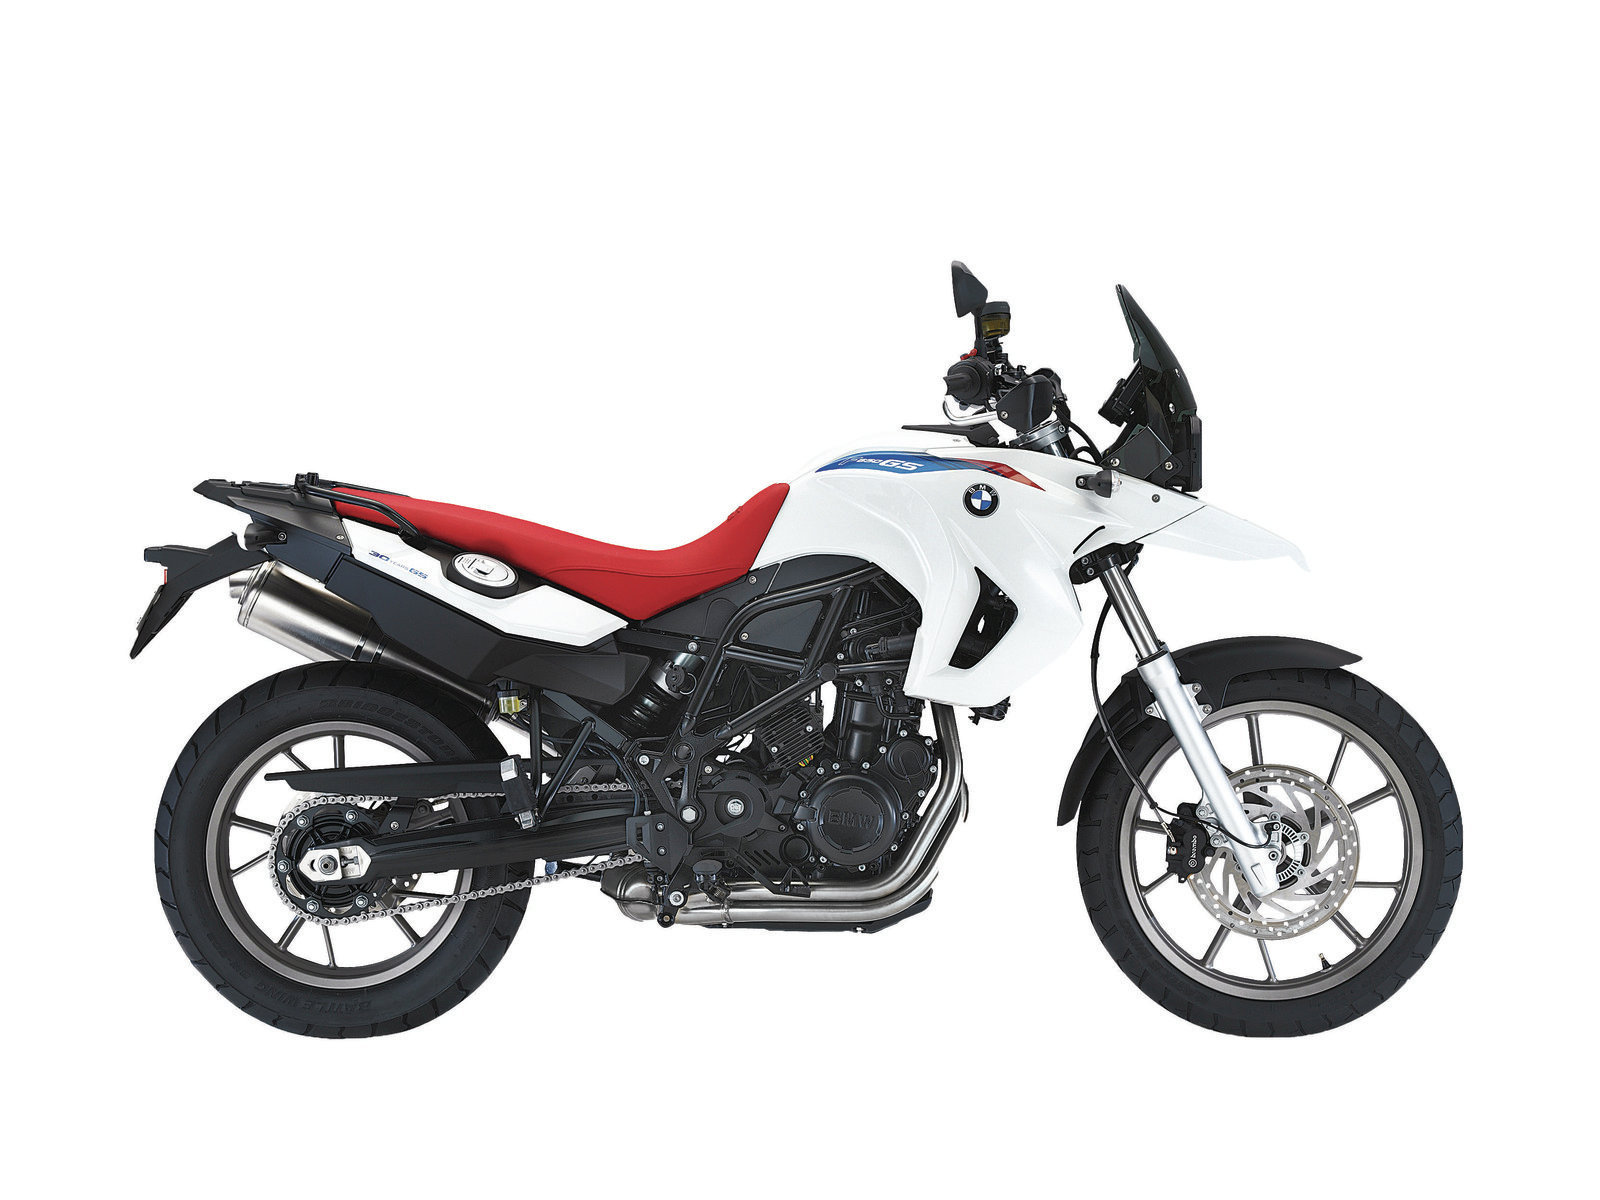 BMW G 650 GS 2014 Motorcycle and scooter rentals in Málaga (Spain)